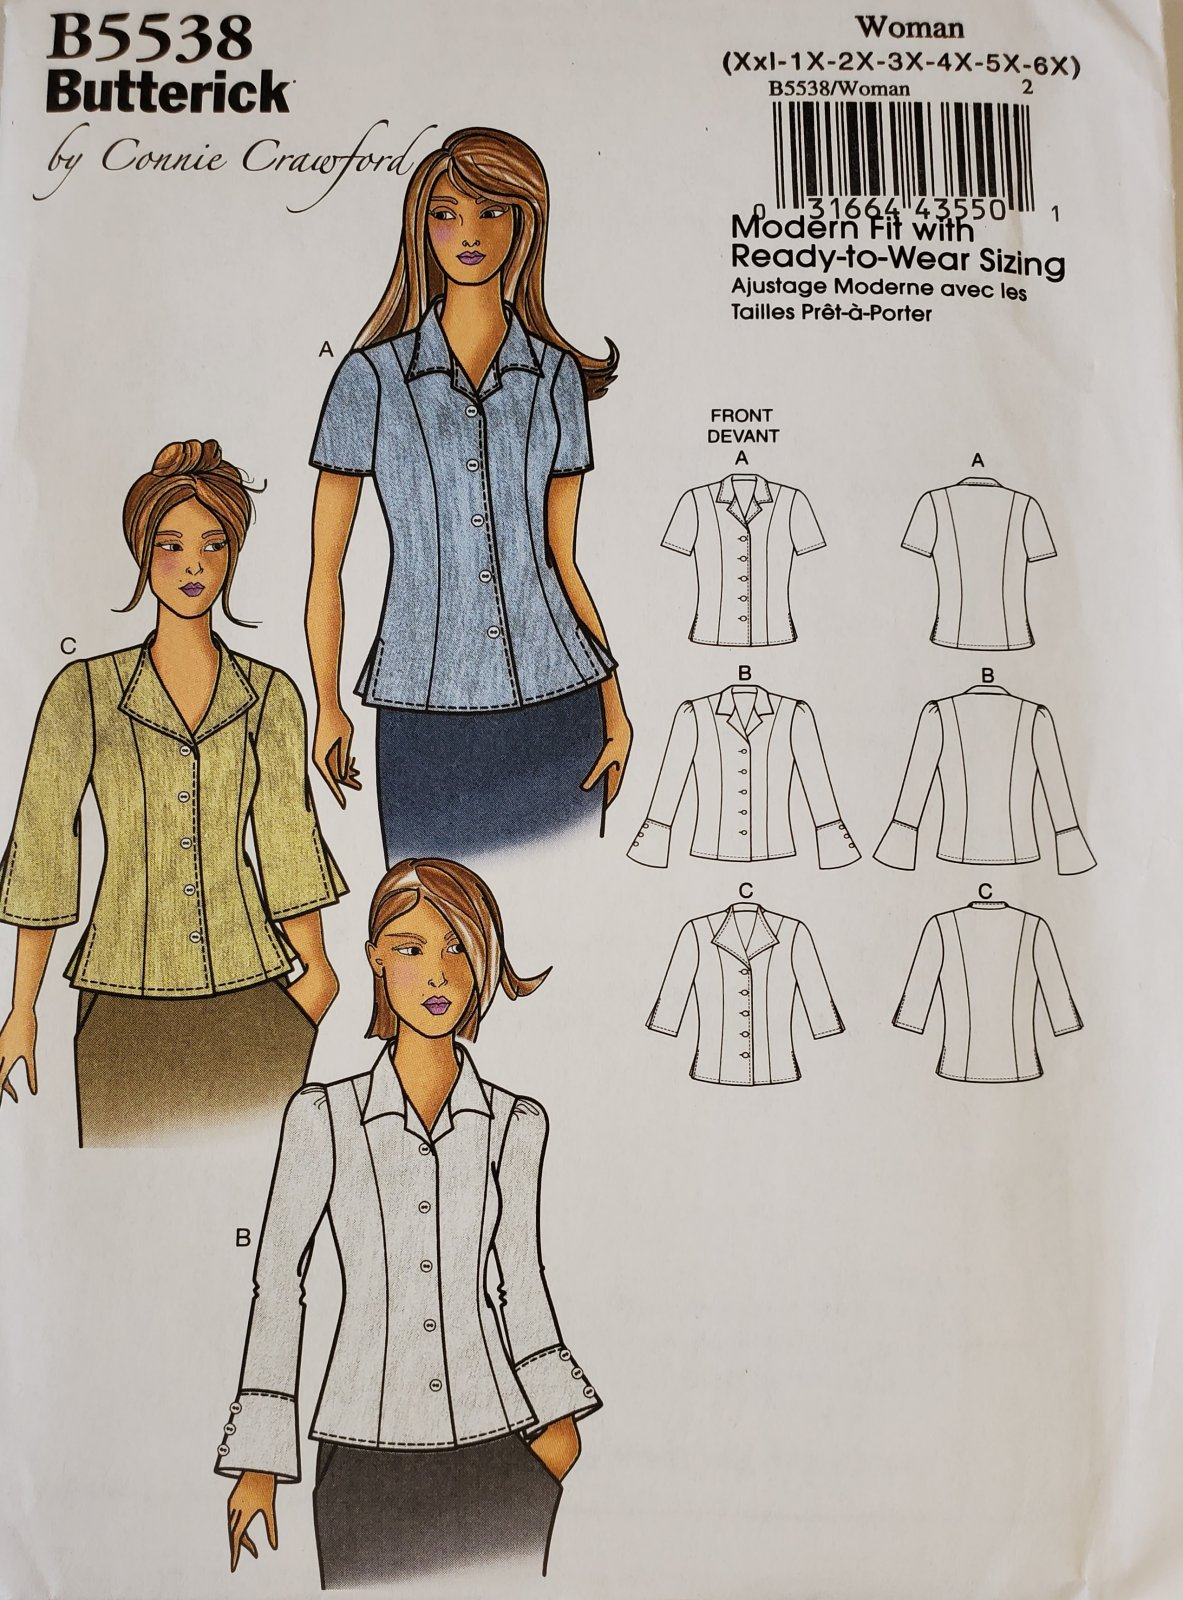 Butterick 5538 by Connie Crawford (Xs-S-M-L-XL)